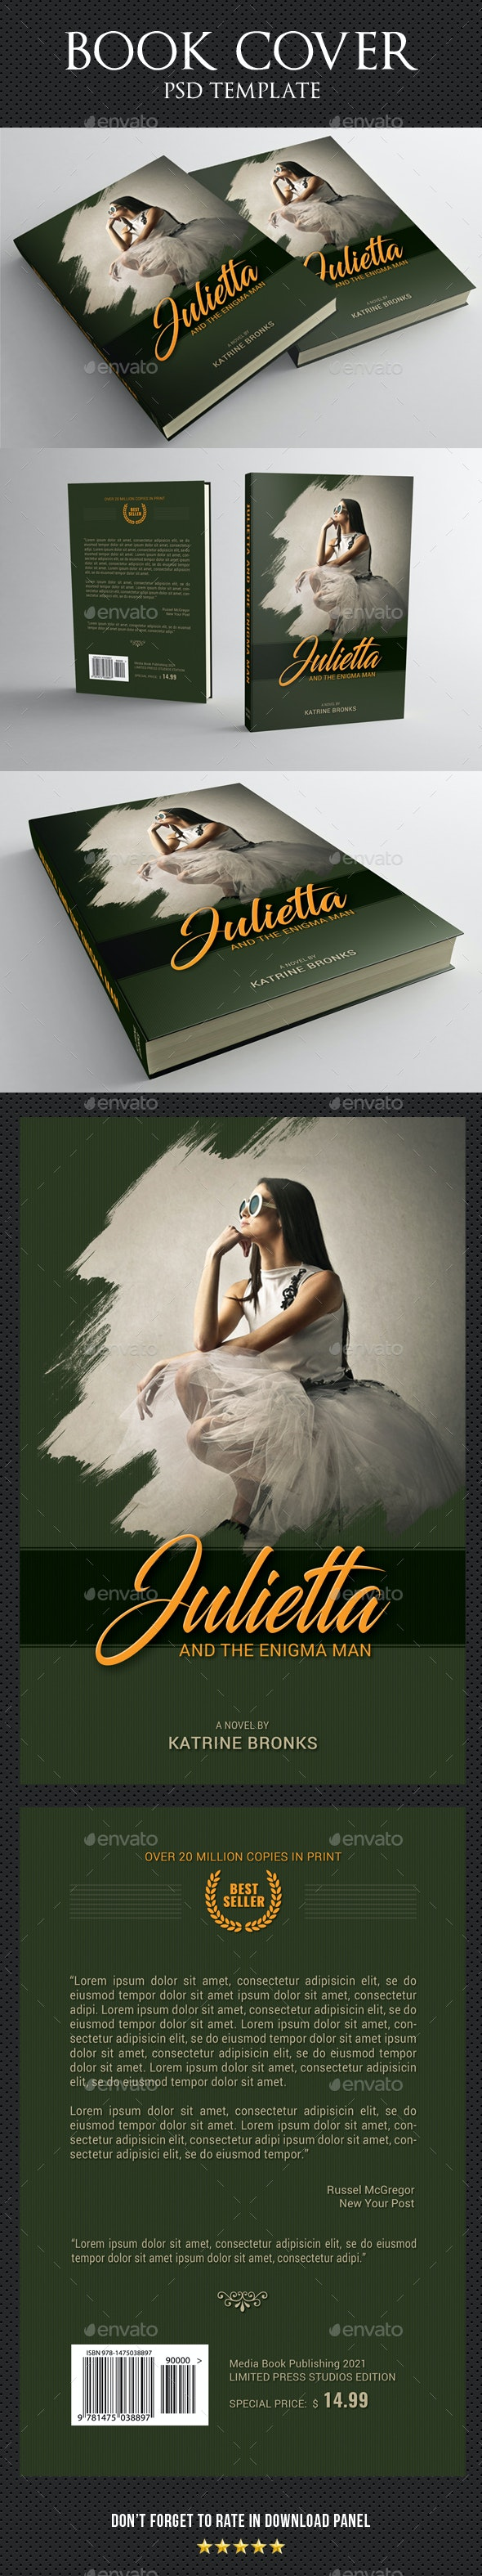 Book Cover Template 80 - Miscellaneous Print Templates